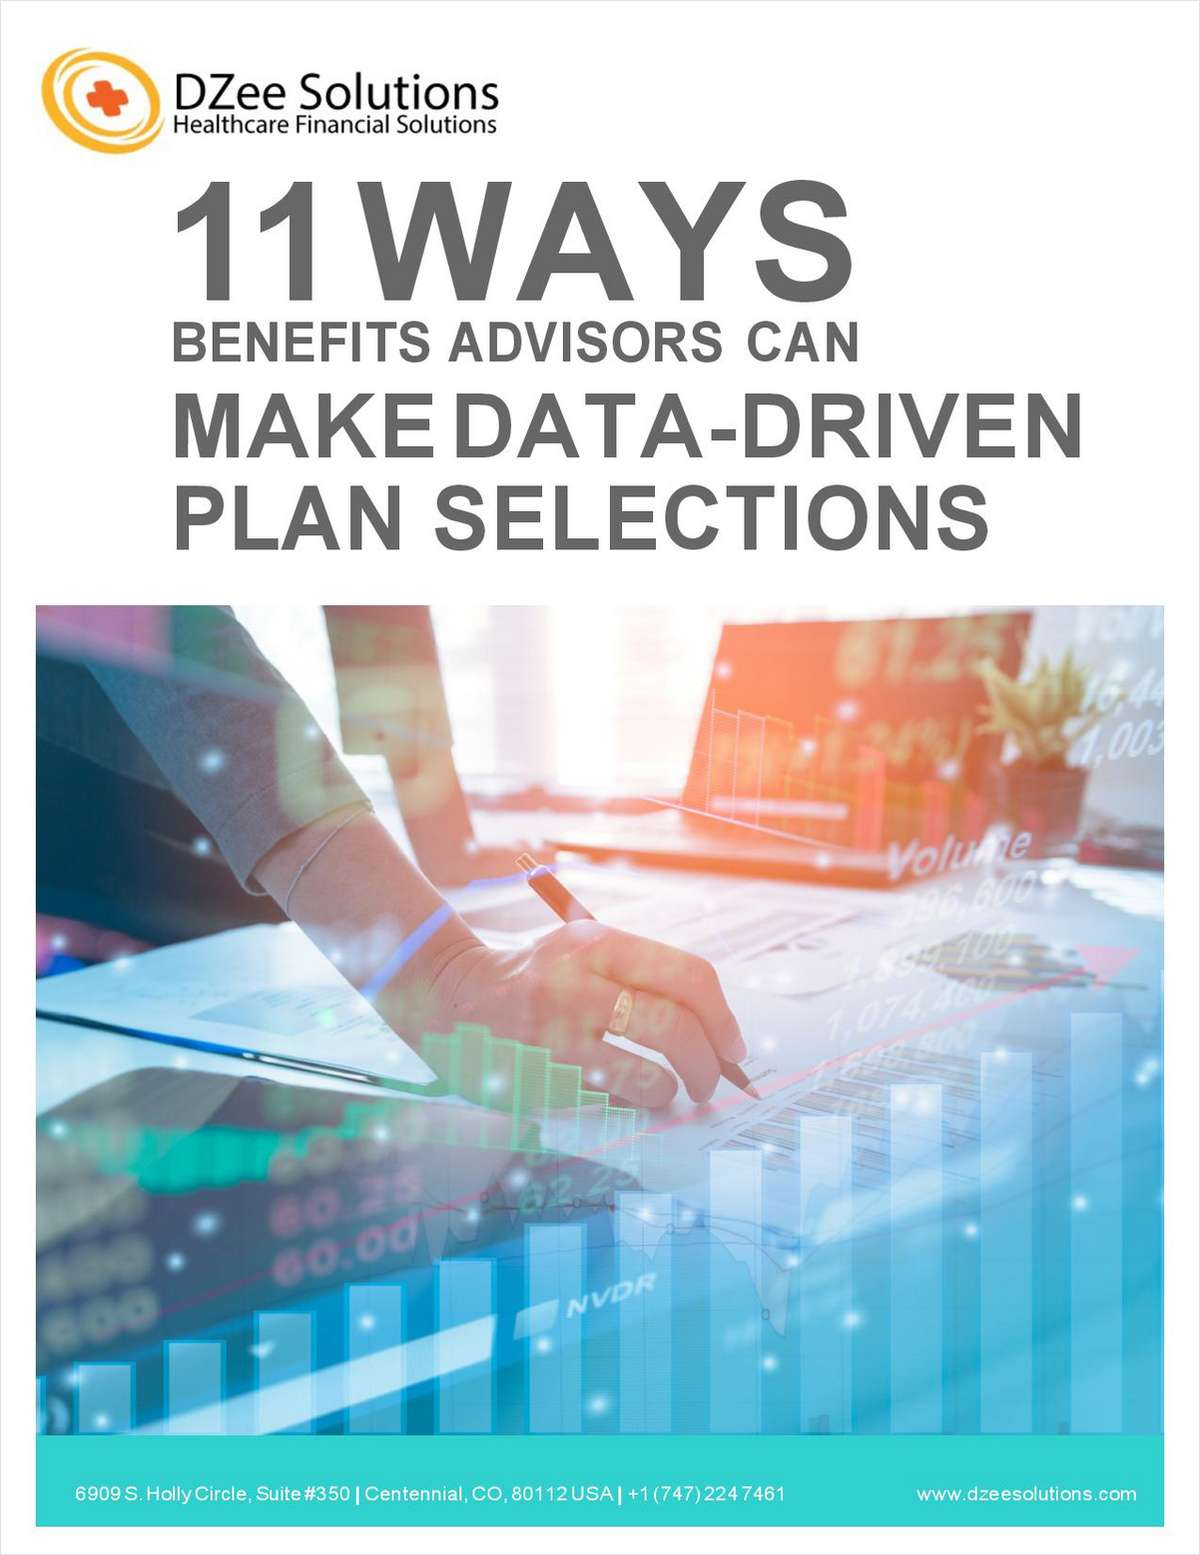 11 Ways Benefits Advisors Can Make Data-Driven Plan Selections